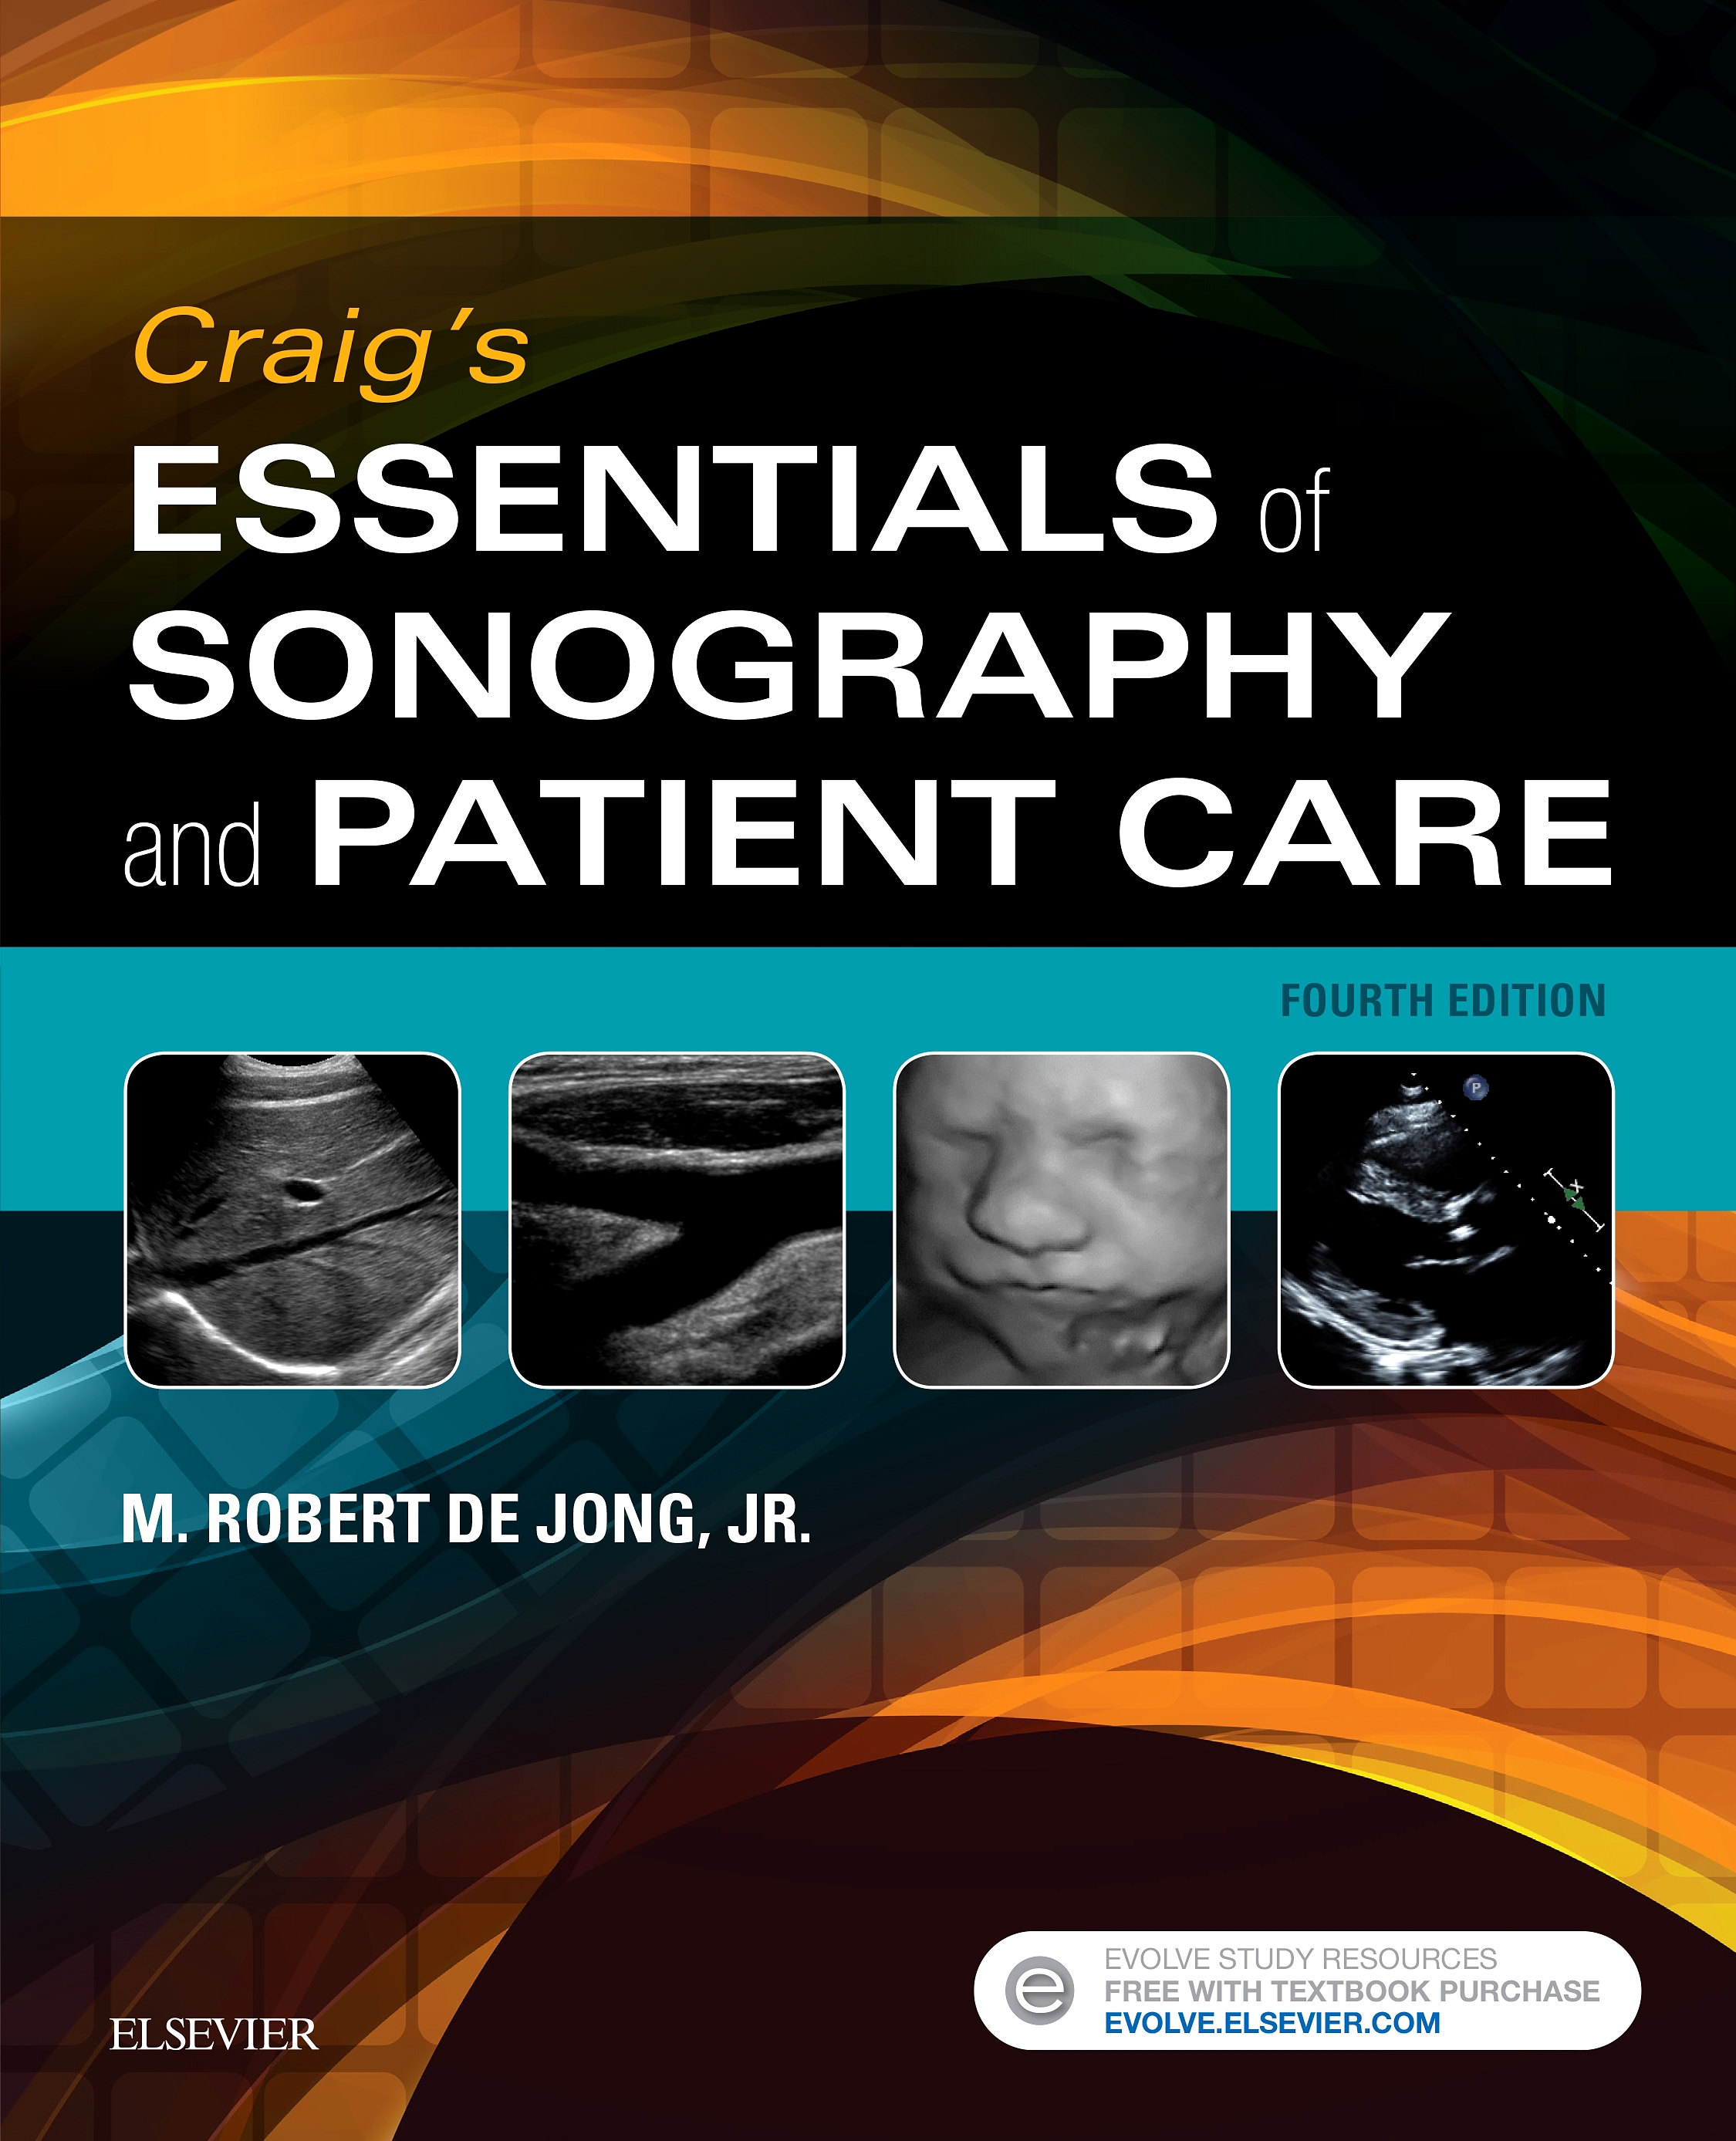 Evolve Resources for Craig's Essentials of Sonography and Patient Care, 4th Edition